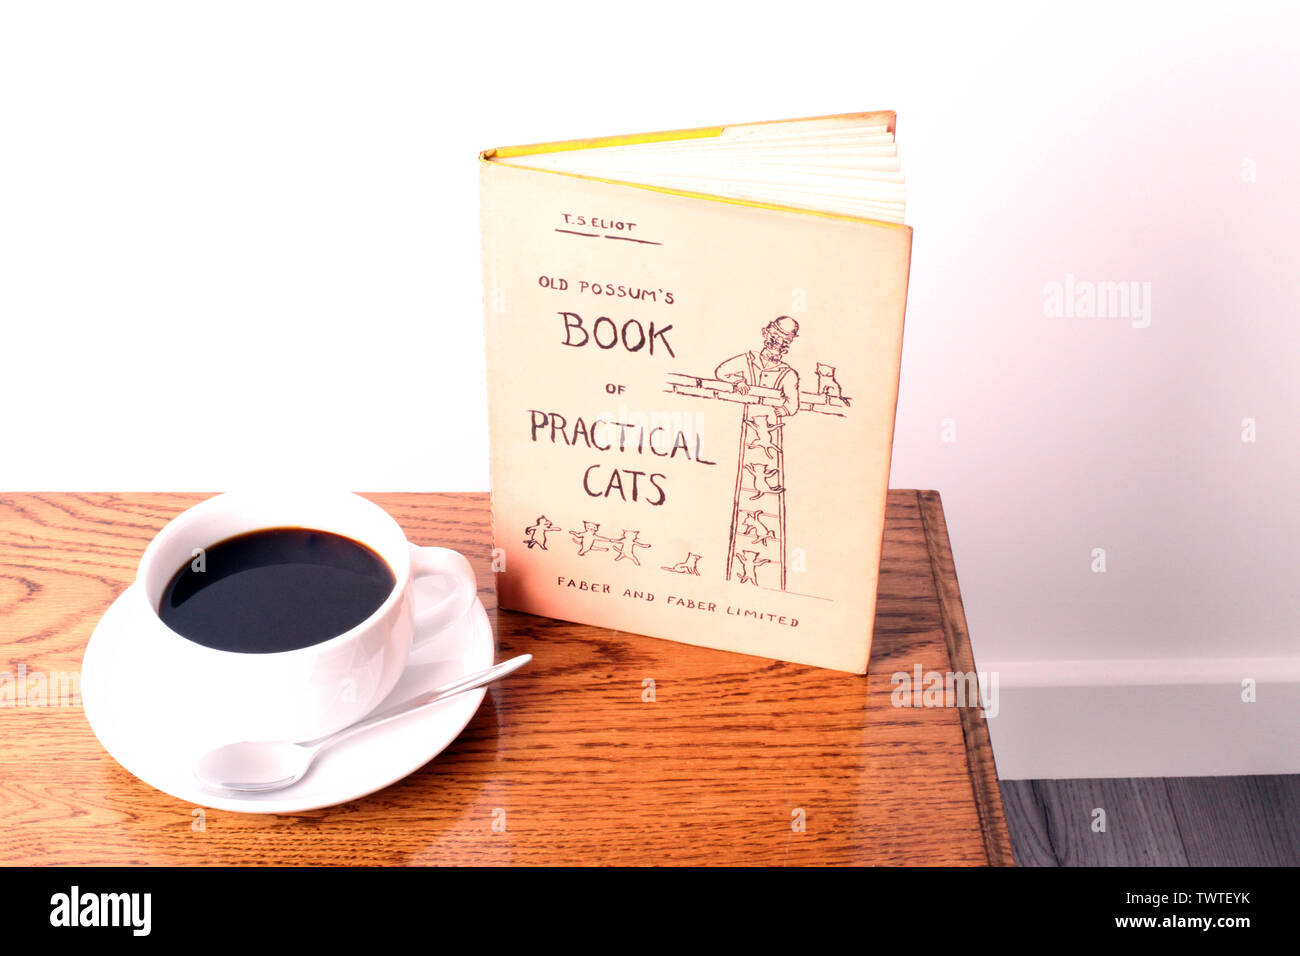 Old Possums Book of Practical Cats - A book of poems by T.S. Eliot with a cup of black coffee on a wooden coffee table with white background - Stock Image